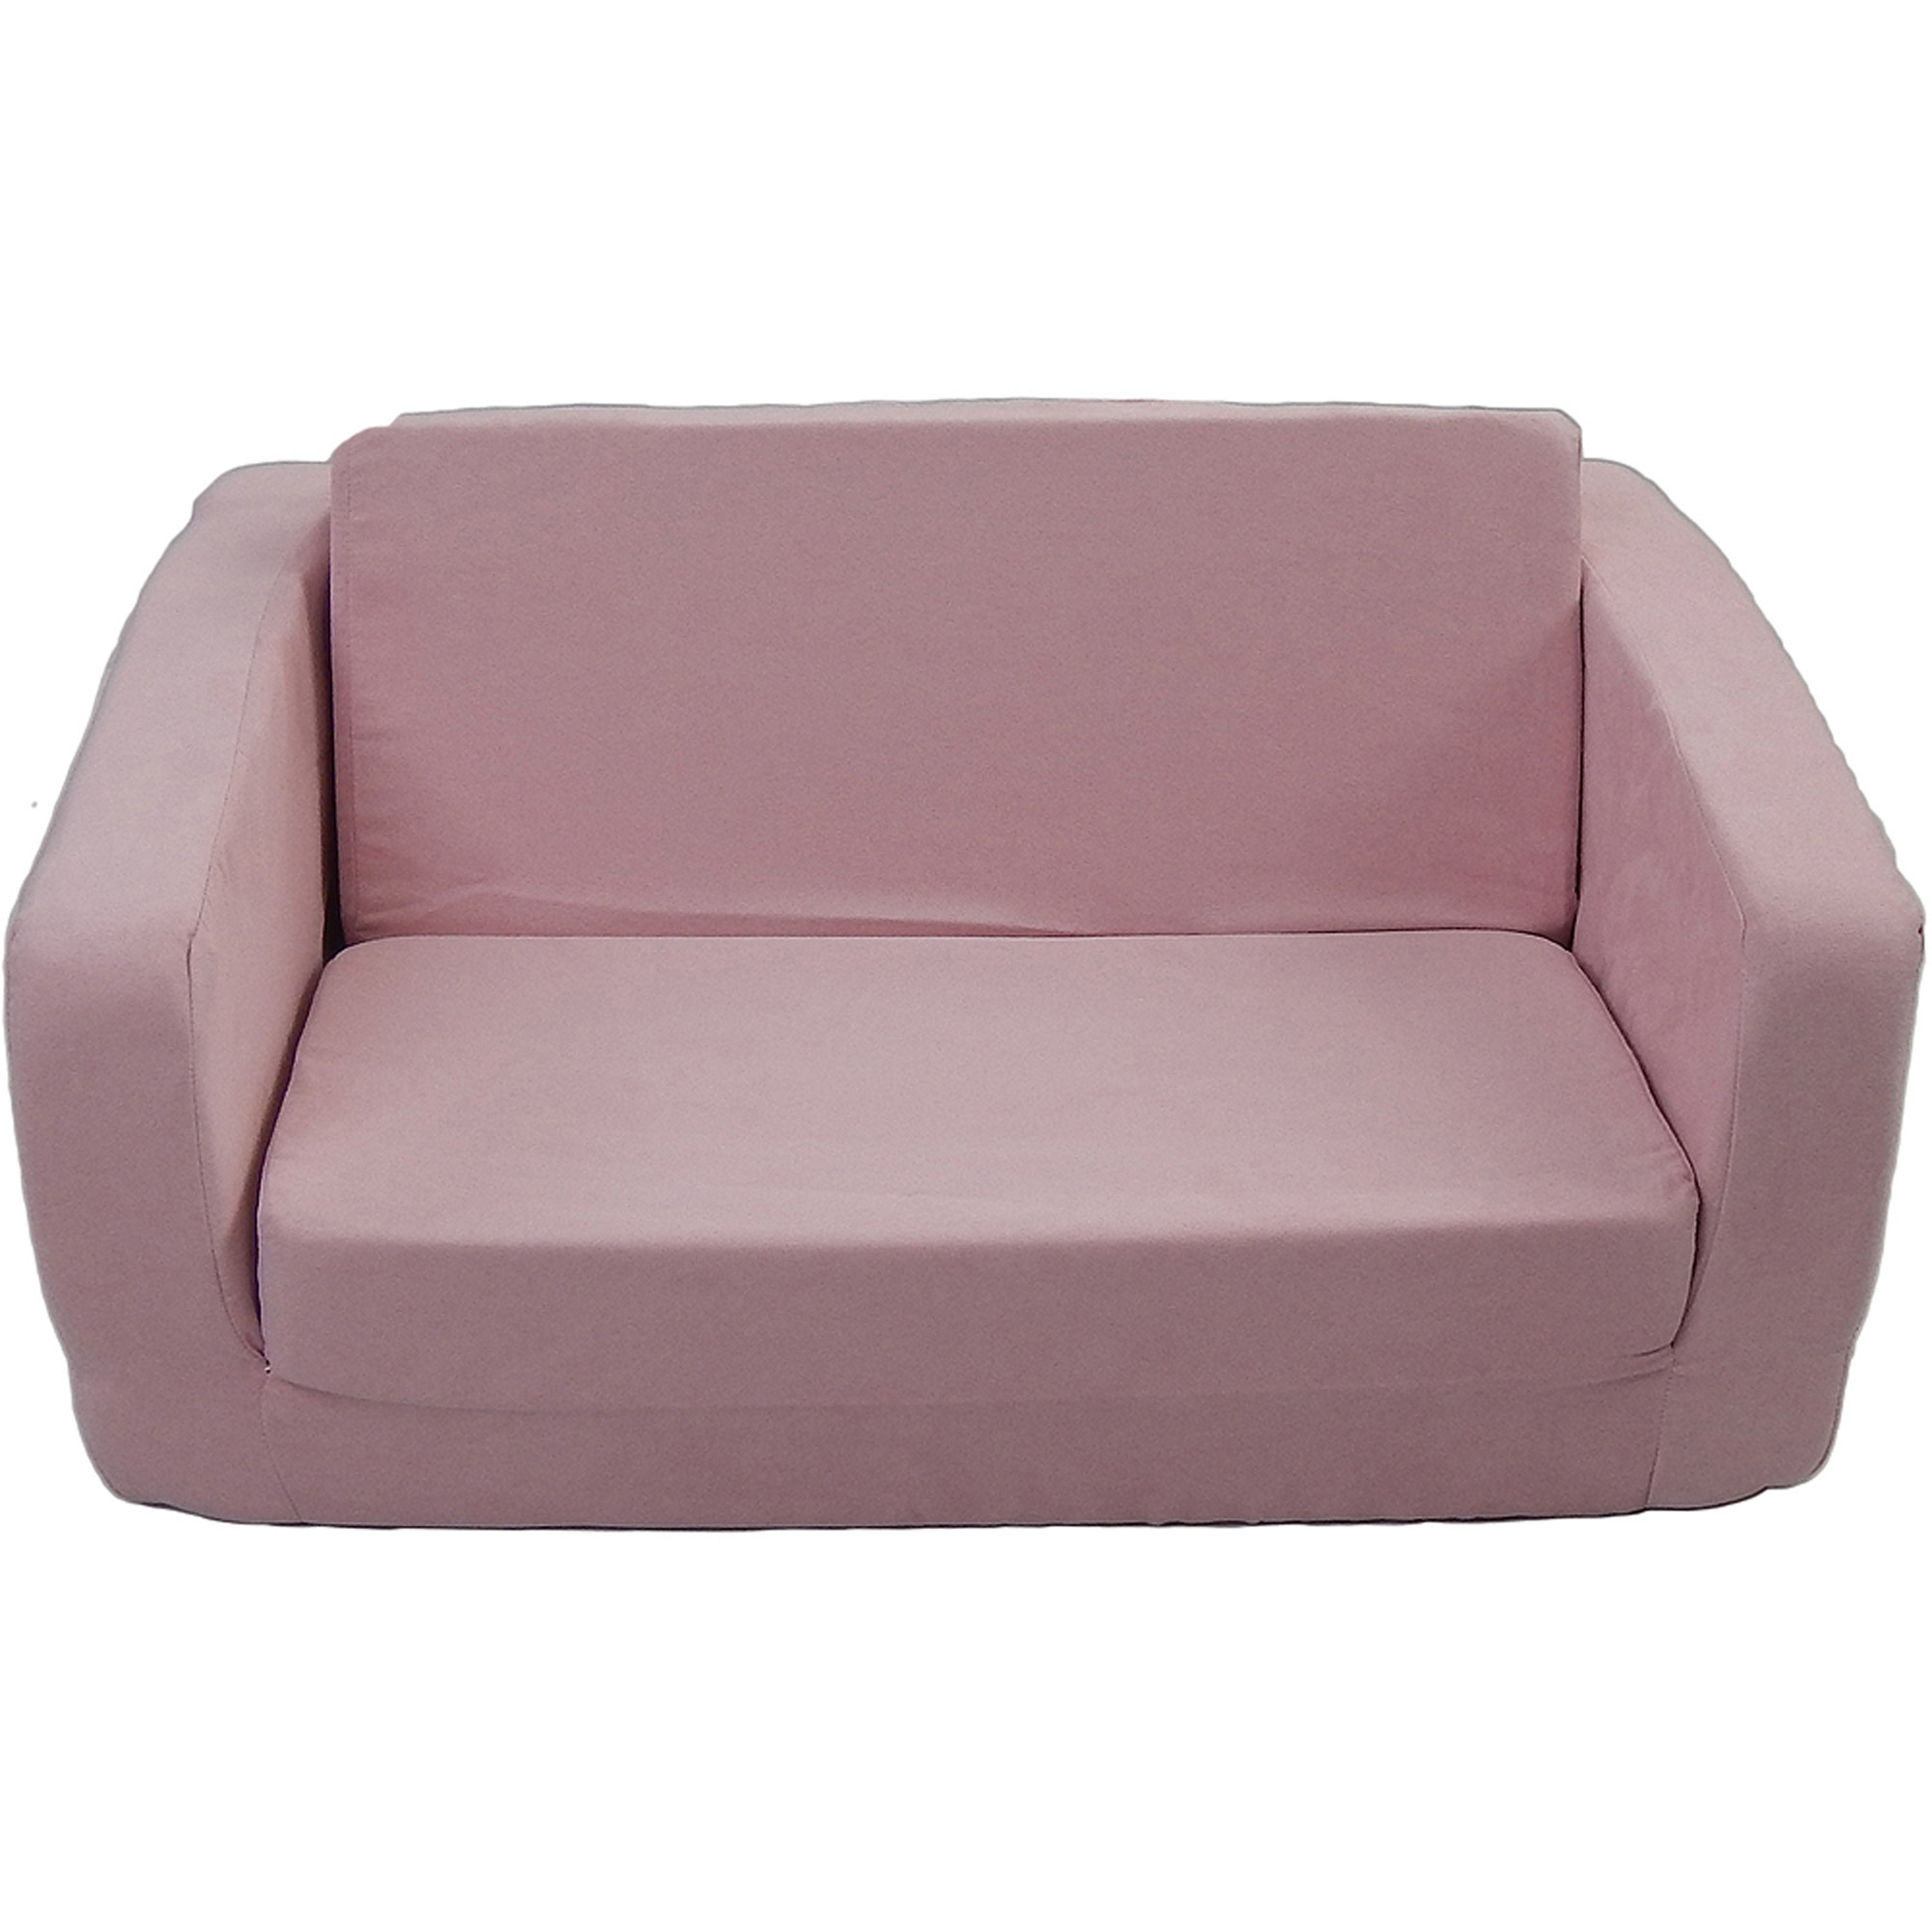 frozen flip sofa canada slipcover sofas kids toddler light pink micro